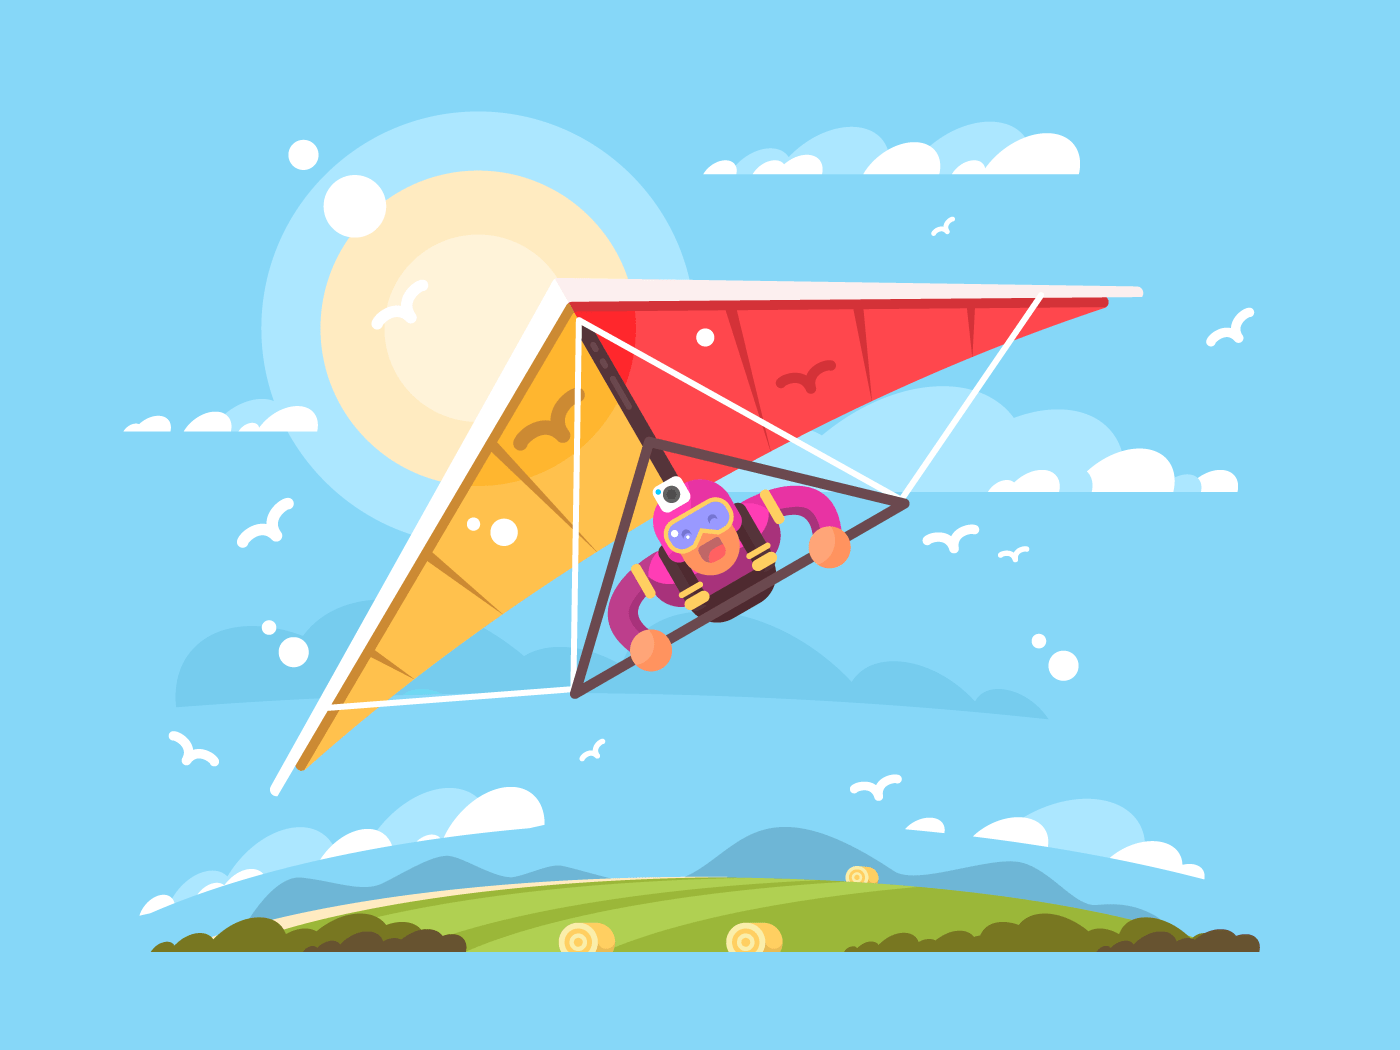 Man on a hang glider flat vector illustration